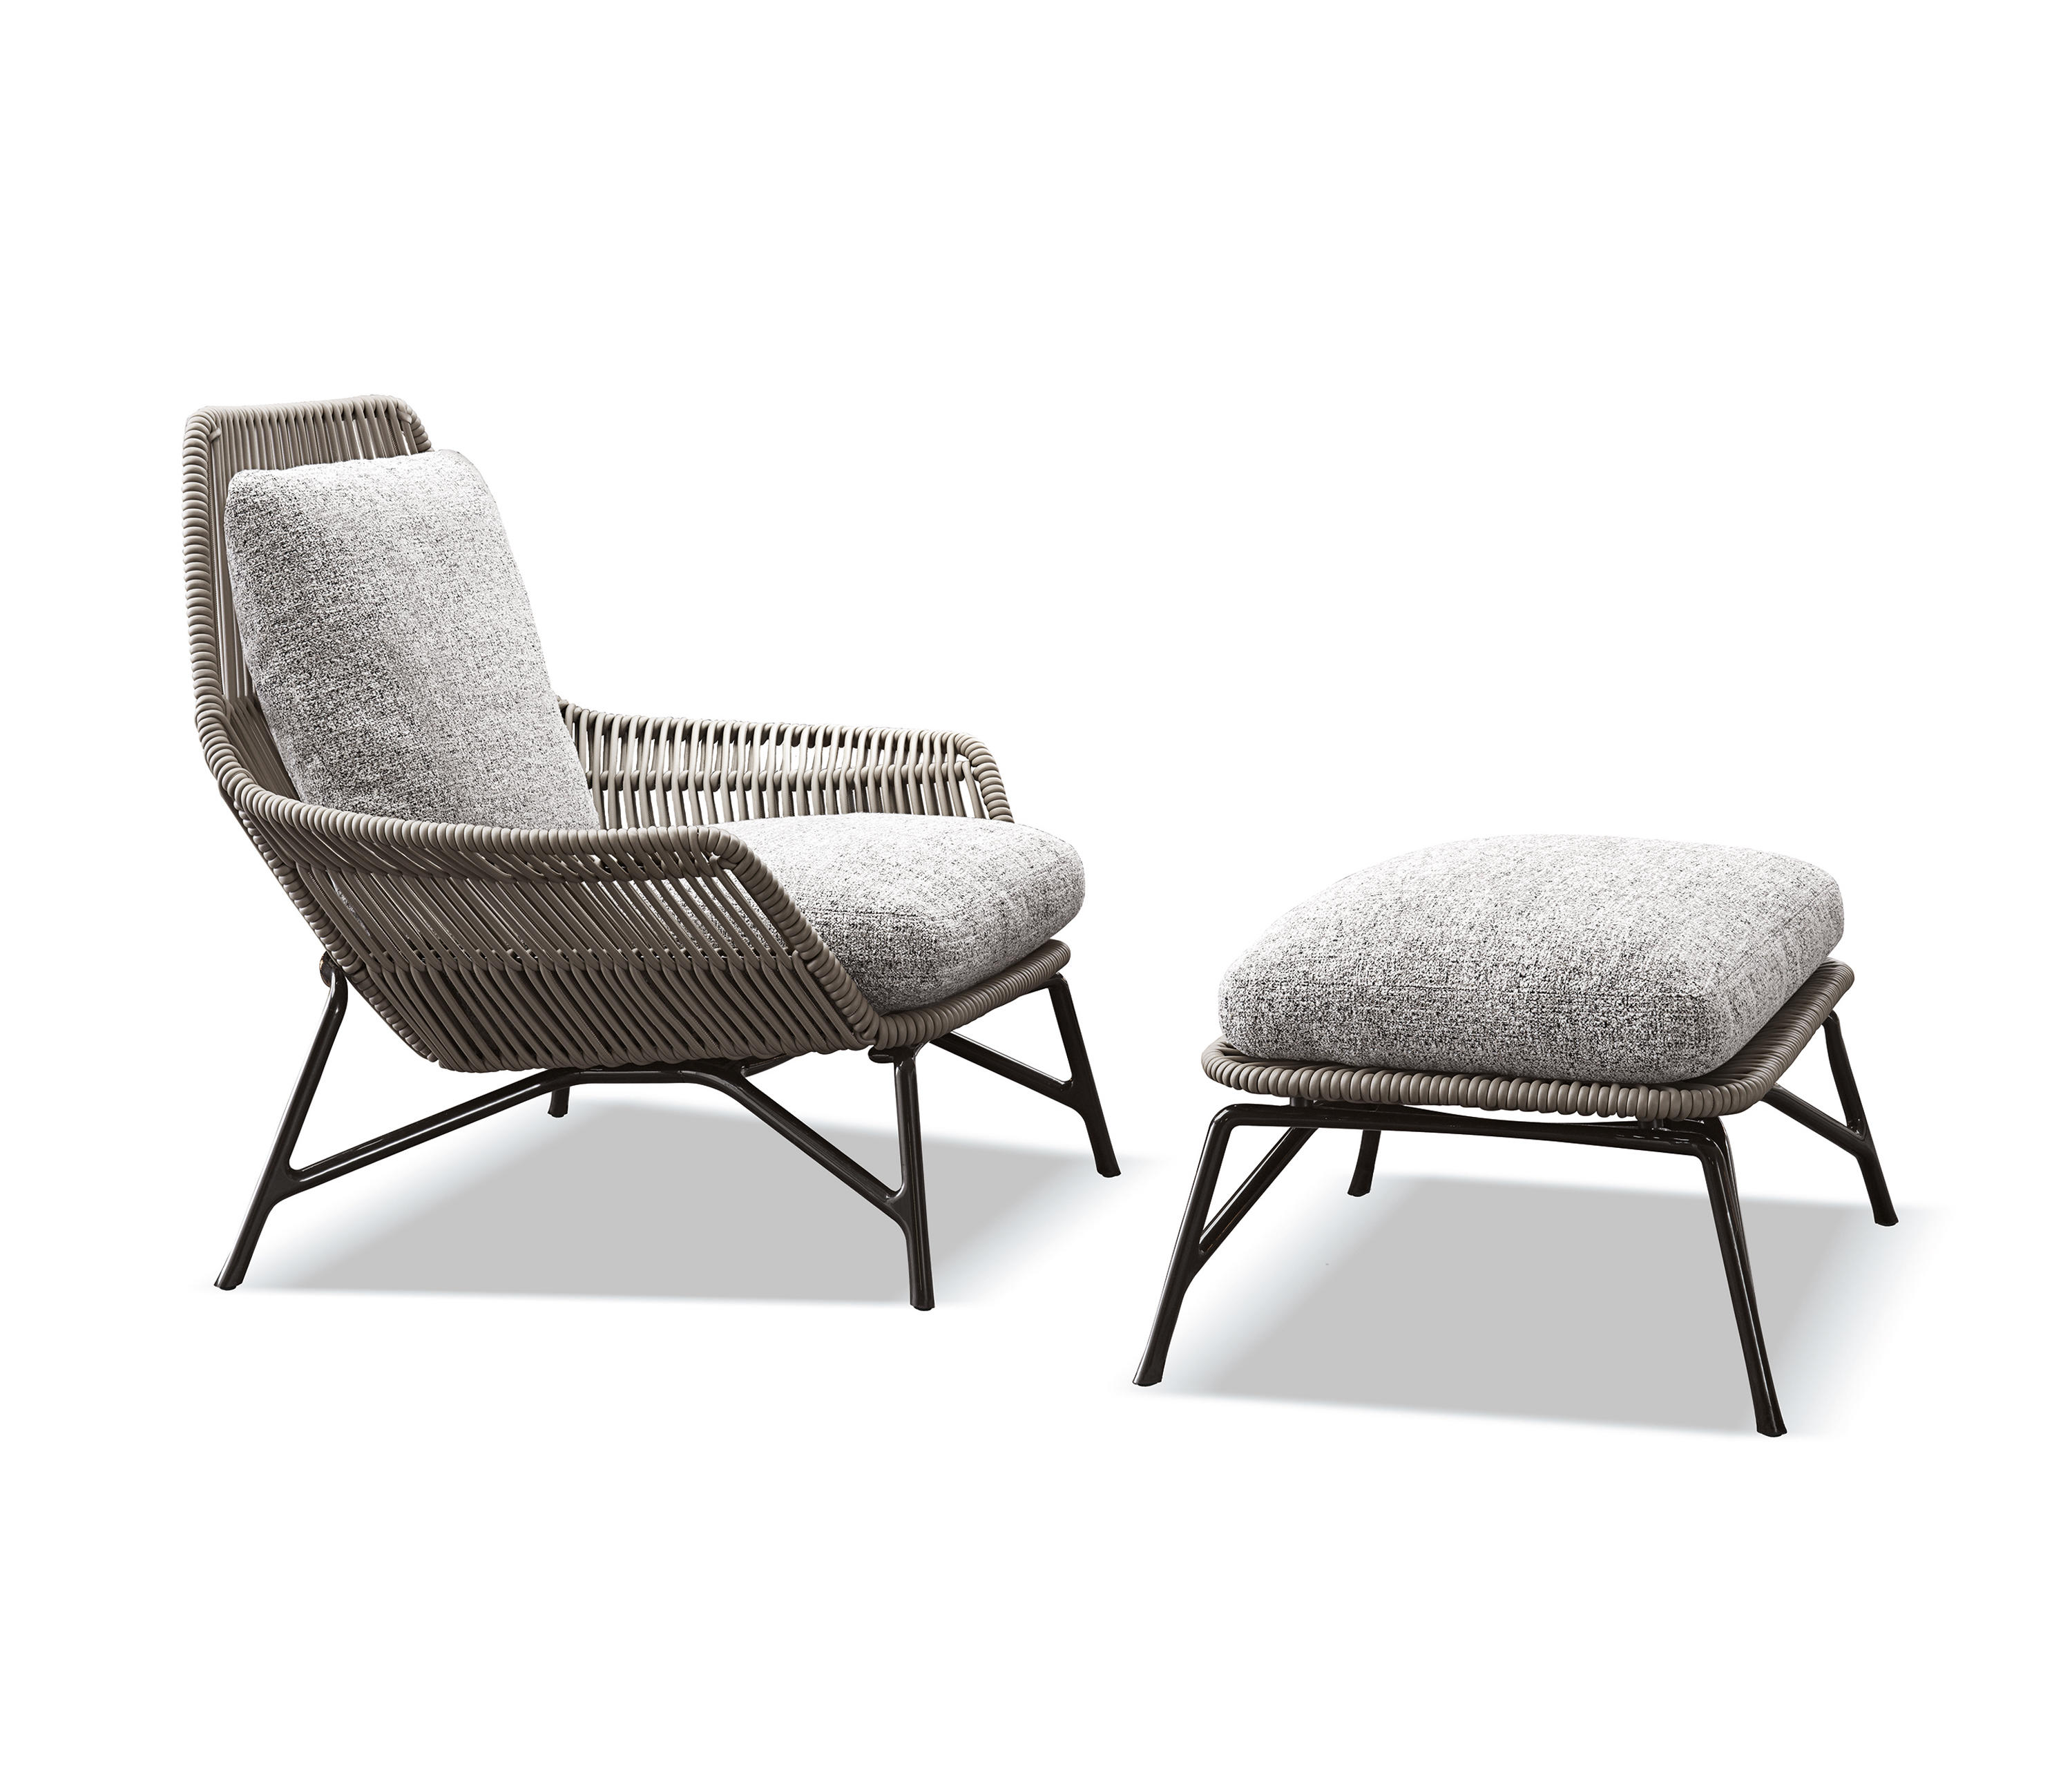 Prince Cord Indoor Sessel Von Minotti Architonic